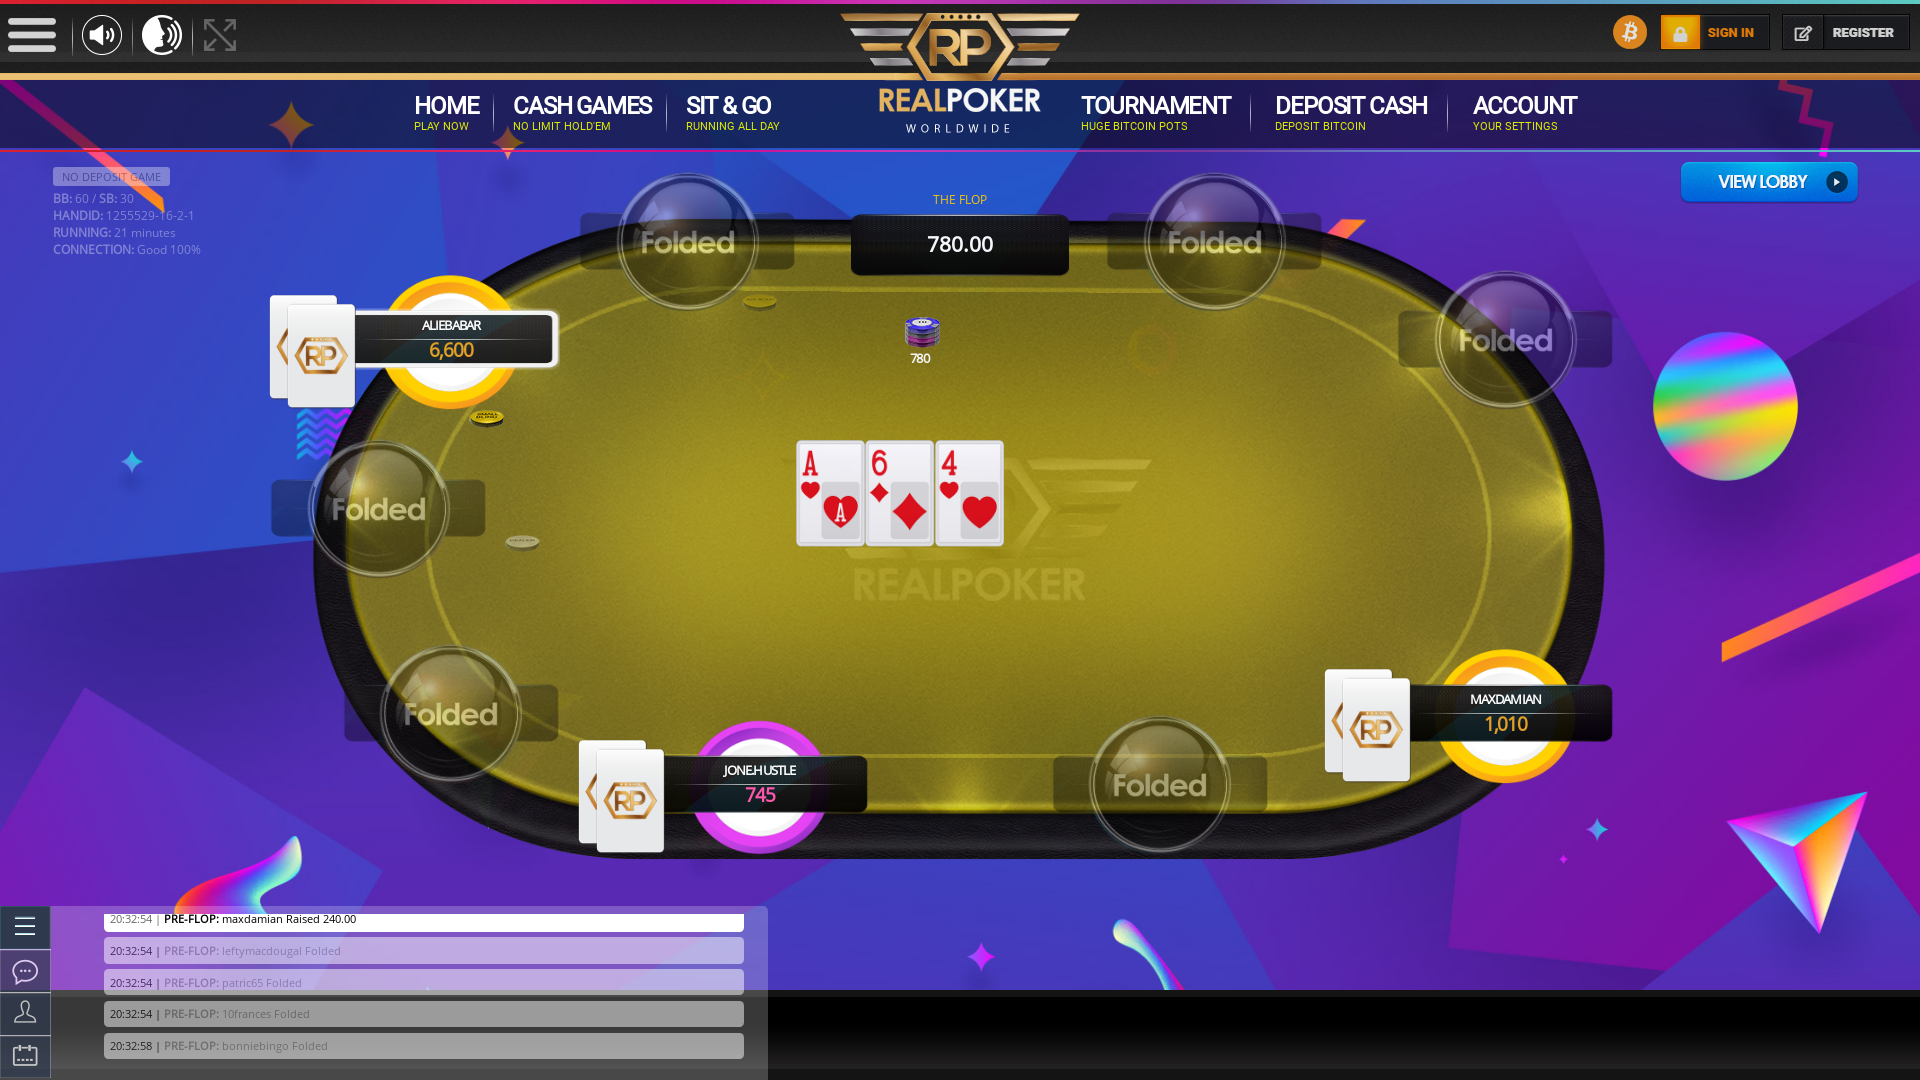 Online poker on a 10 player table in the 21st minute match up